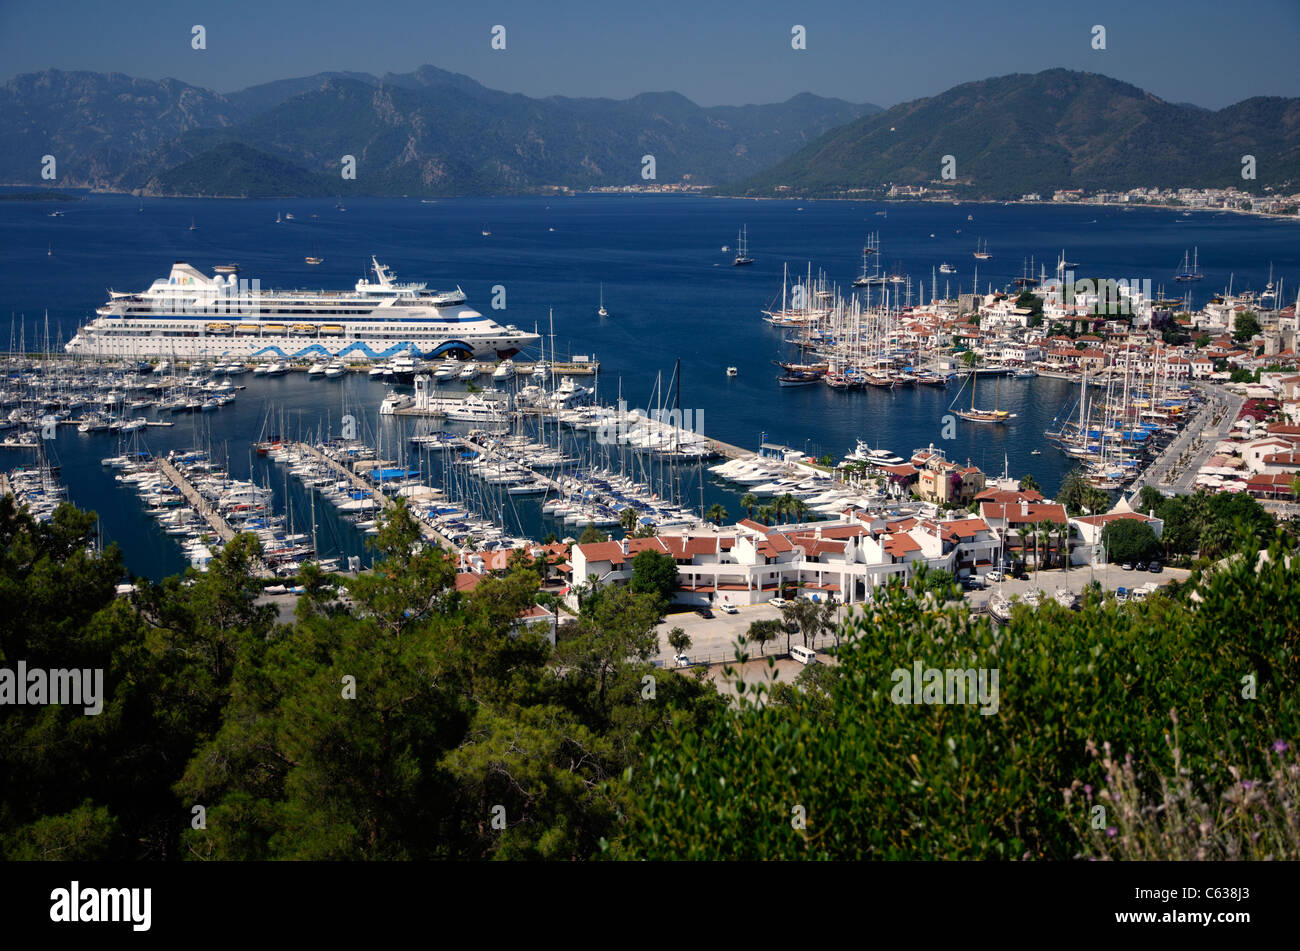 Port of Marmaris, Turkey. Old town with marina and cruise ship AIDA Aura on quay. Stock Photo